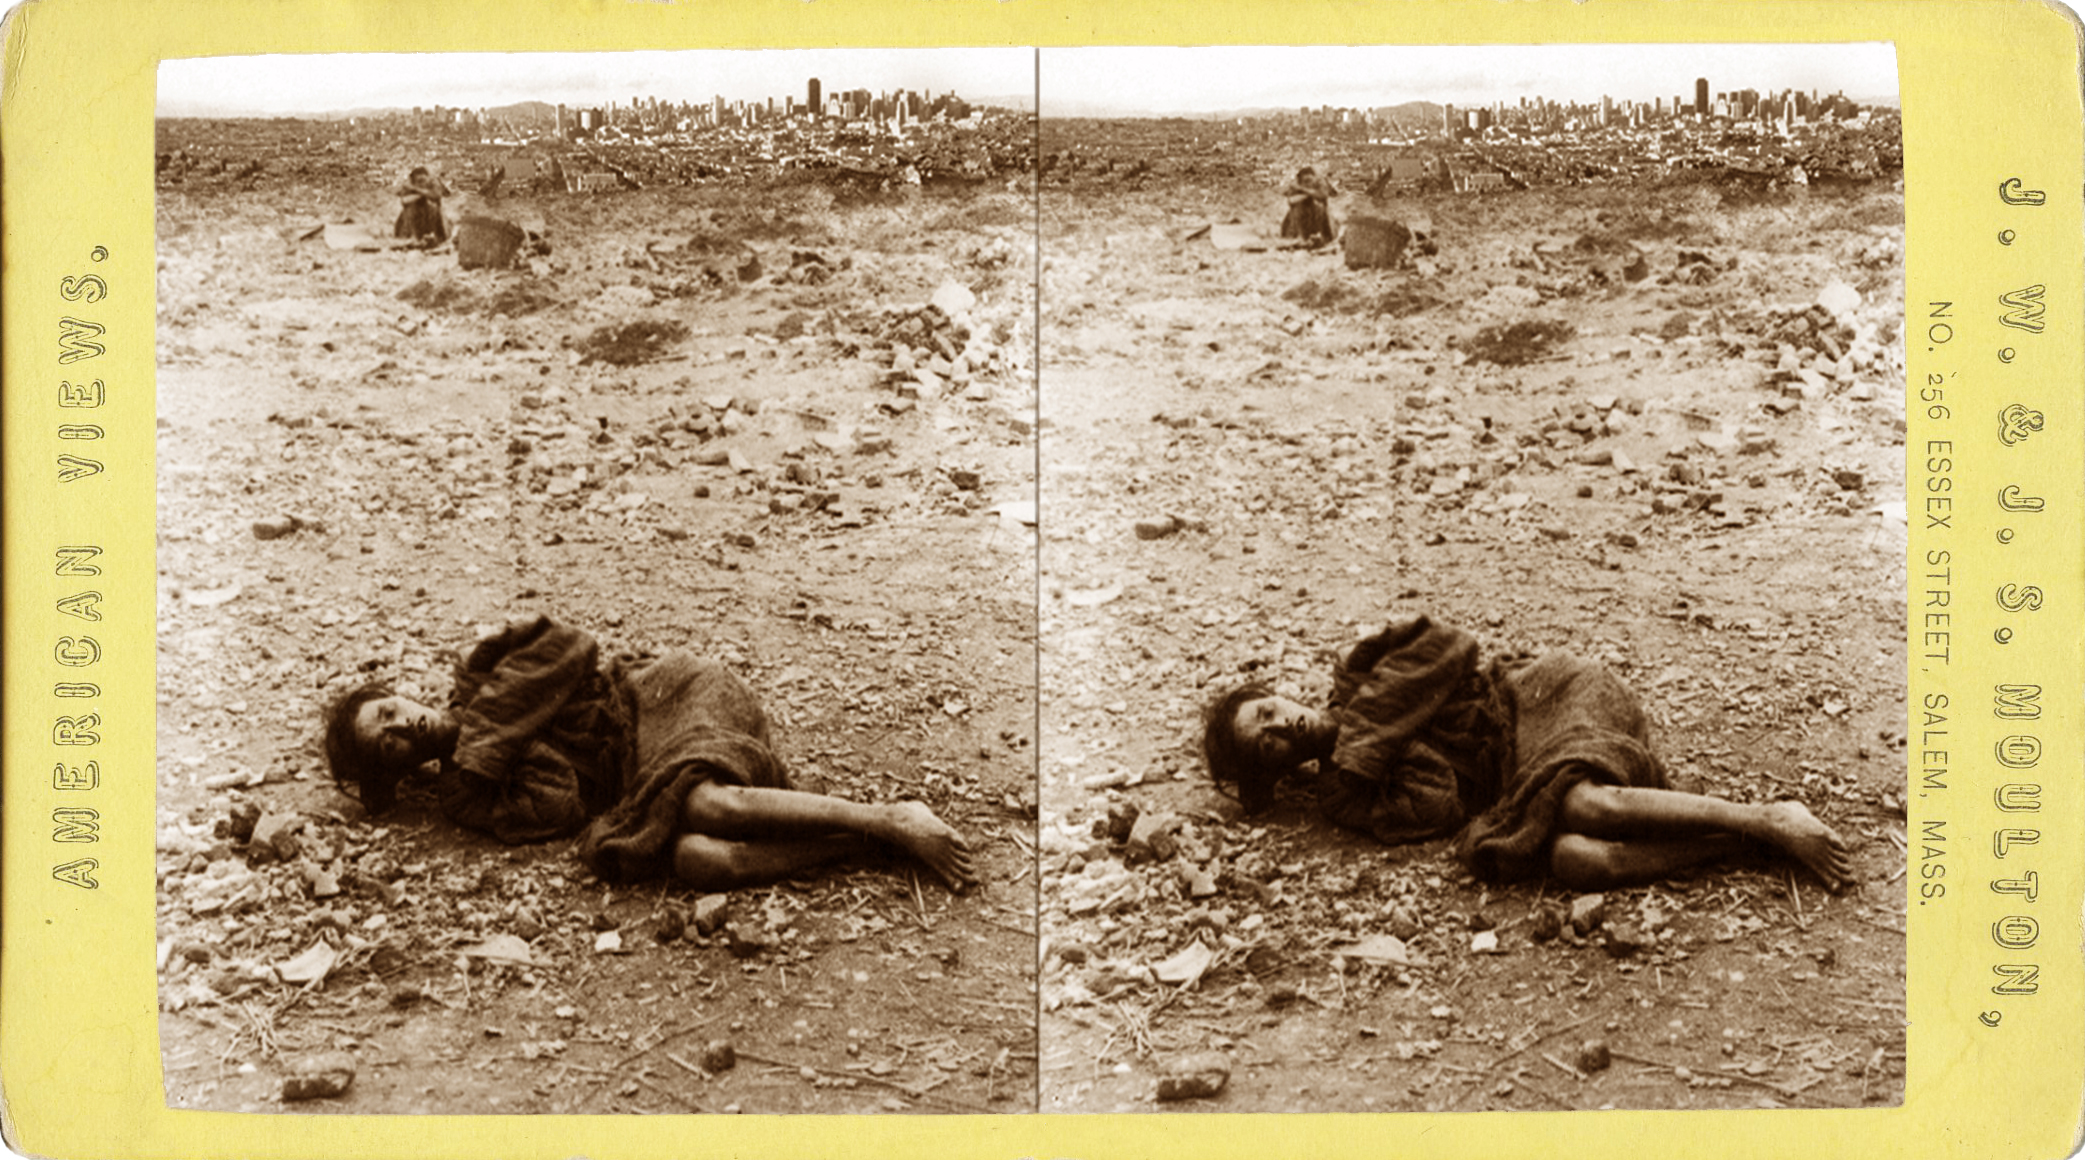 "This stereoscopic card, entitled ""Dying in the 'Dying Field,' where discouraged poor are proffered the opportunity to die, San Francisco, California "", bears upon its reverse a typically purpled and, thus, sales-garnering expanded description: ""While people of other nationalities have places set apart for the poor to be buried in, the United States of America goes a little further in providing, for a small fee, a spot on which to die. The particular spot depicted here is just outside the financial quarter of San Francisco where, surrounded by a wall of studied disregard, is a small tract of waste land specially designated for poverty stricken wretches to visit in their last hours. Instead of sheltering the destitute poor, the Americans content themselves with renting a last refuge to the ""creatively destroyed"", and here one may often see the poor and helpless creatures writhing in the grip of the invisible hand as they gasp their last mortal agony. The scene illustrates the sophistic brutality of the Americans, who have an inadequate conception of the solemnity of death and are, or seem to be, utterly destitute of the finer feelings of humanity.""     Normal   0           false   false   false     EN-US   X-NONE   X-NONE                                                                                                                                                                                                                                                                                                                                                                    /* Style Definitions */  table.MsoNormalTable 	{mso-style-name:""Table Normal""; 	mso-tstyle-rowband-size:0; 	mso-tstyle-colband-size:0; 	mso-style-noshow:yes; 	mso-style-priority:99; 	mso-style-parent:""""; 	mso-padding-alt:0in 5.4pt 0in 5.4pt; 	mso-para-margin-top:0in; 	mso-para-margin-right:0in; 	mso-para-margin-bottom:10.0pt; 	mso-para-margin-left:0in; 	line-height:115%; 	mso-pagination:widow-orphan; 	font-size:12.0pt; 	font-family:""Times New Roman"",""serif"";}"